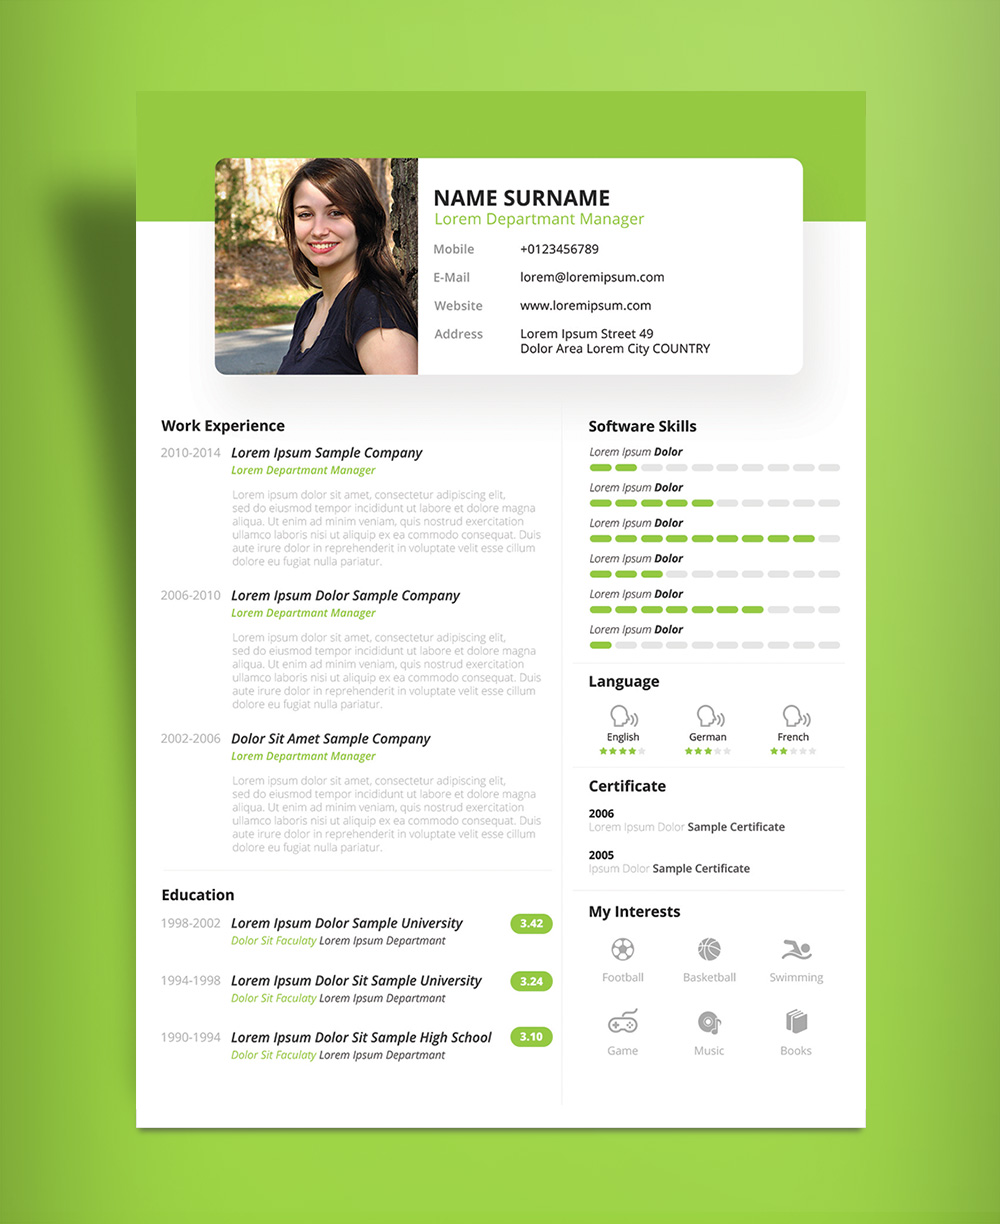 beautiful resume cv design template psd ppt file good beautiful resume cv design template psd ppt file